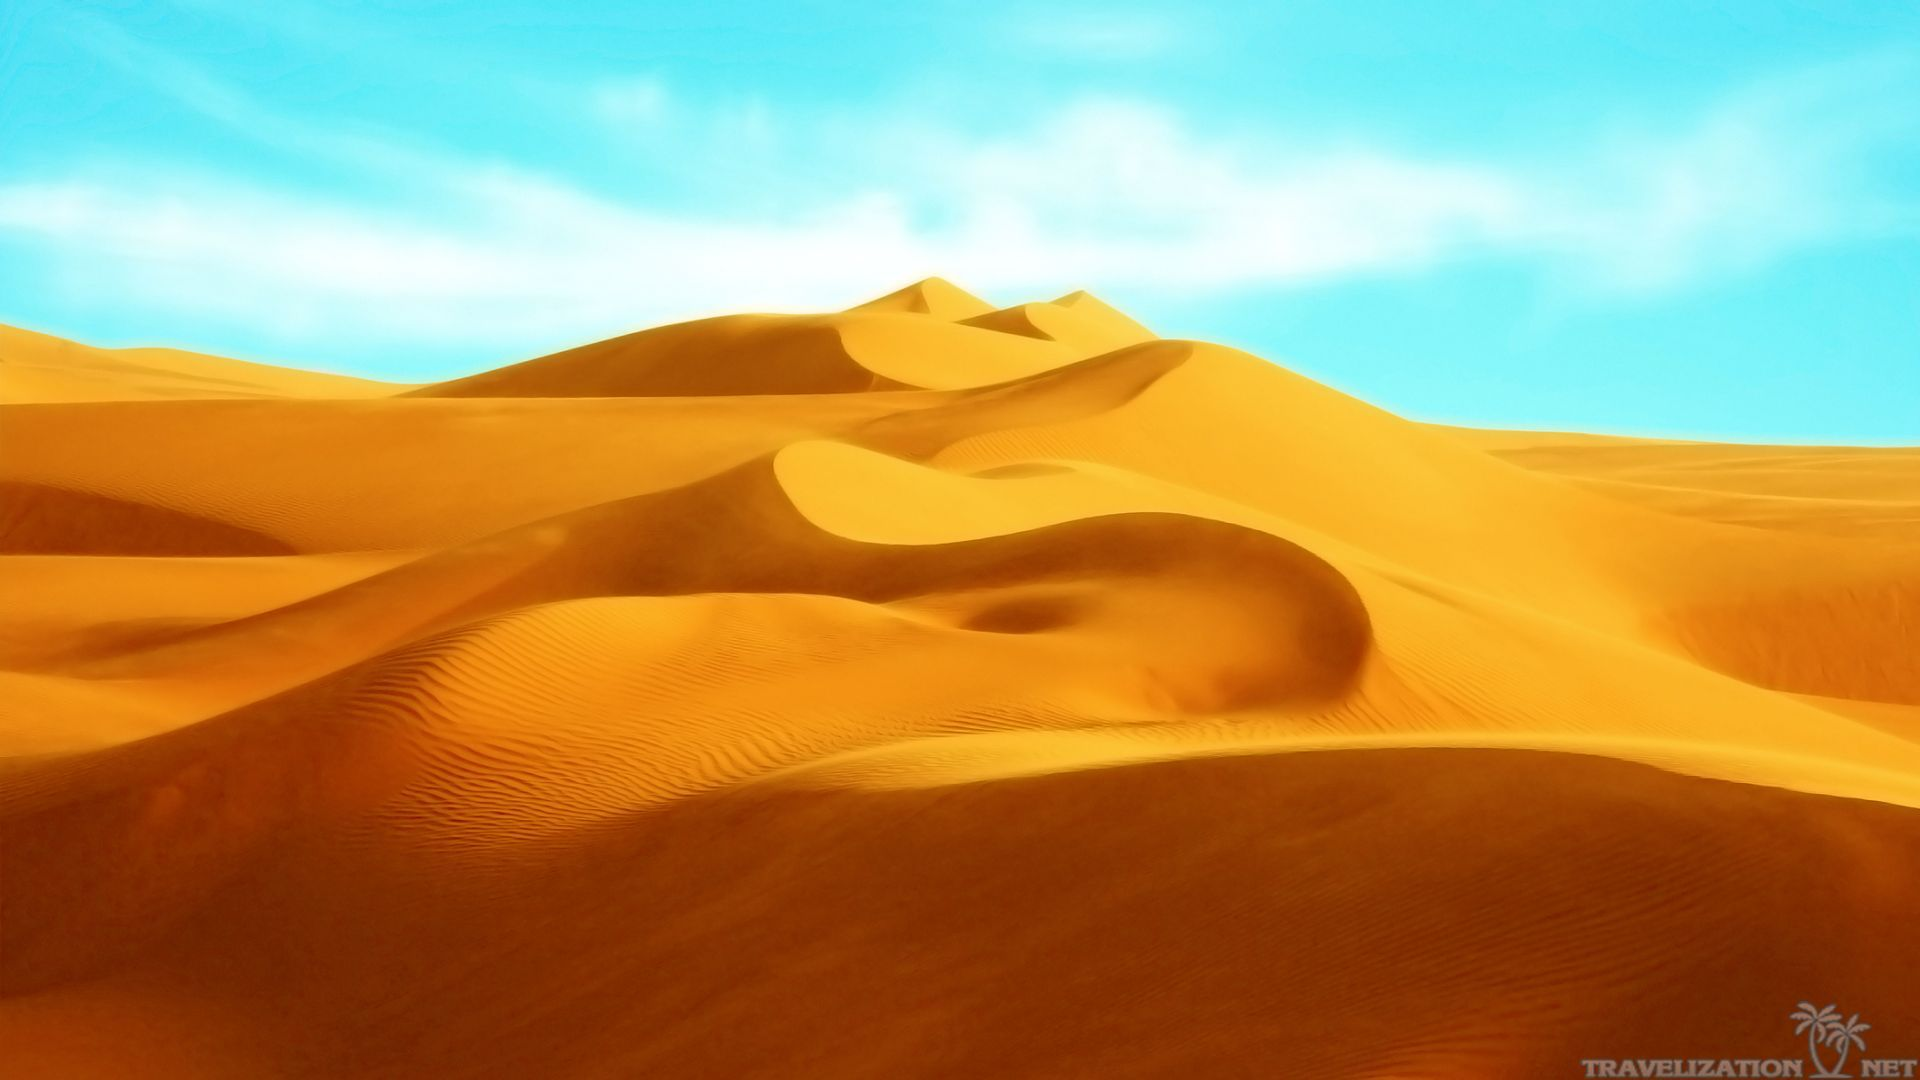 You can find Beautiful Sahara Desert Wallpapers in many resolution such as 1024×768, 1280×1024, 1366×768, ...